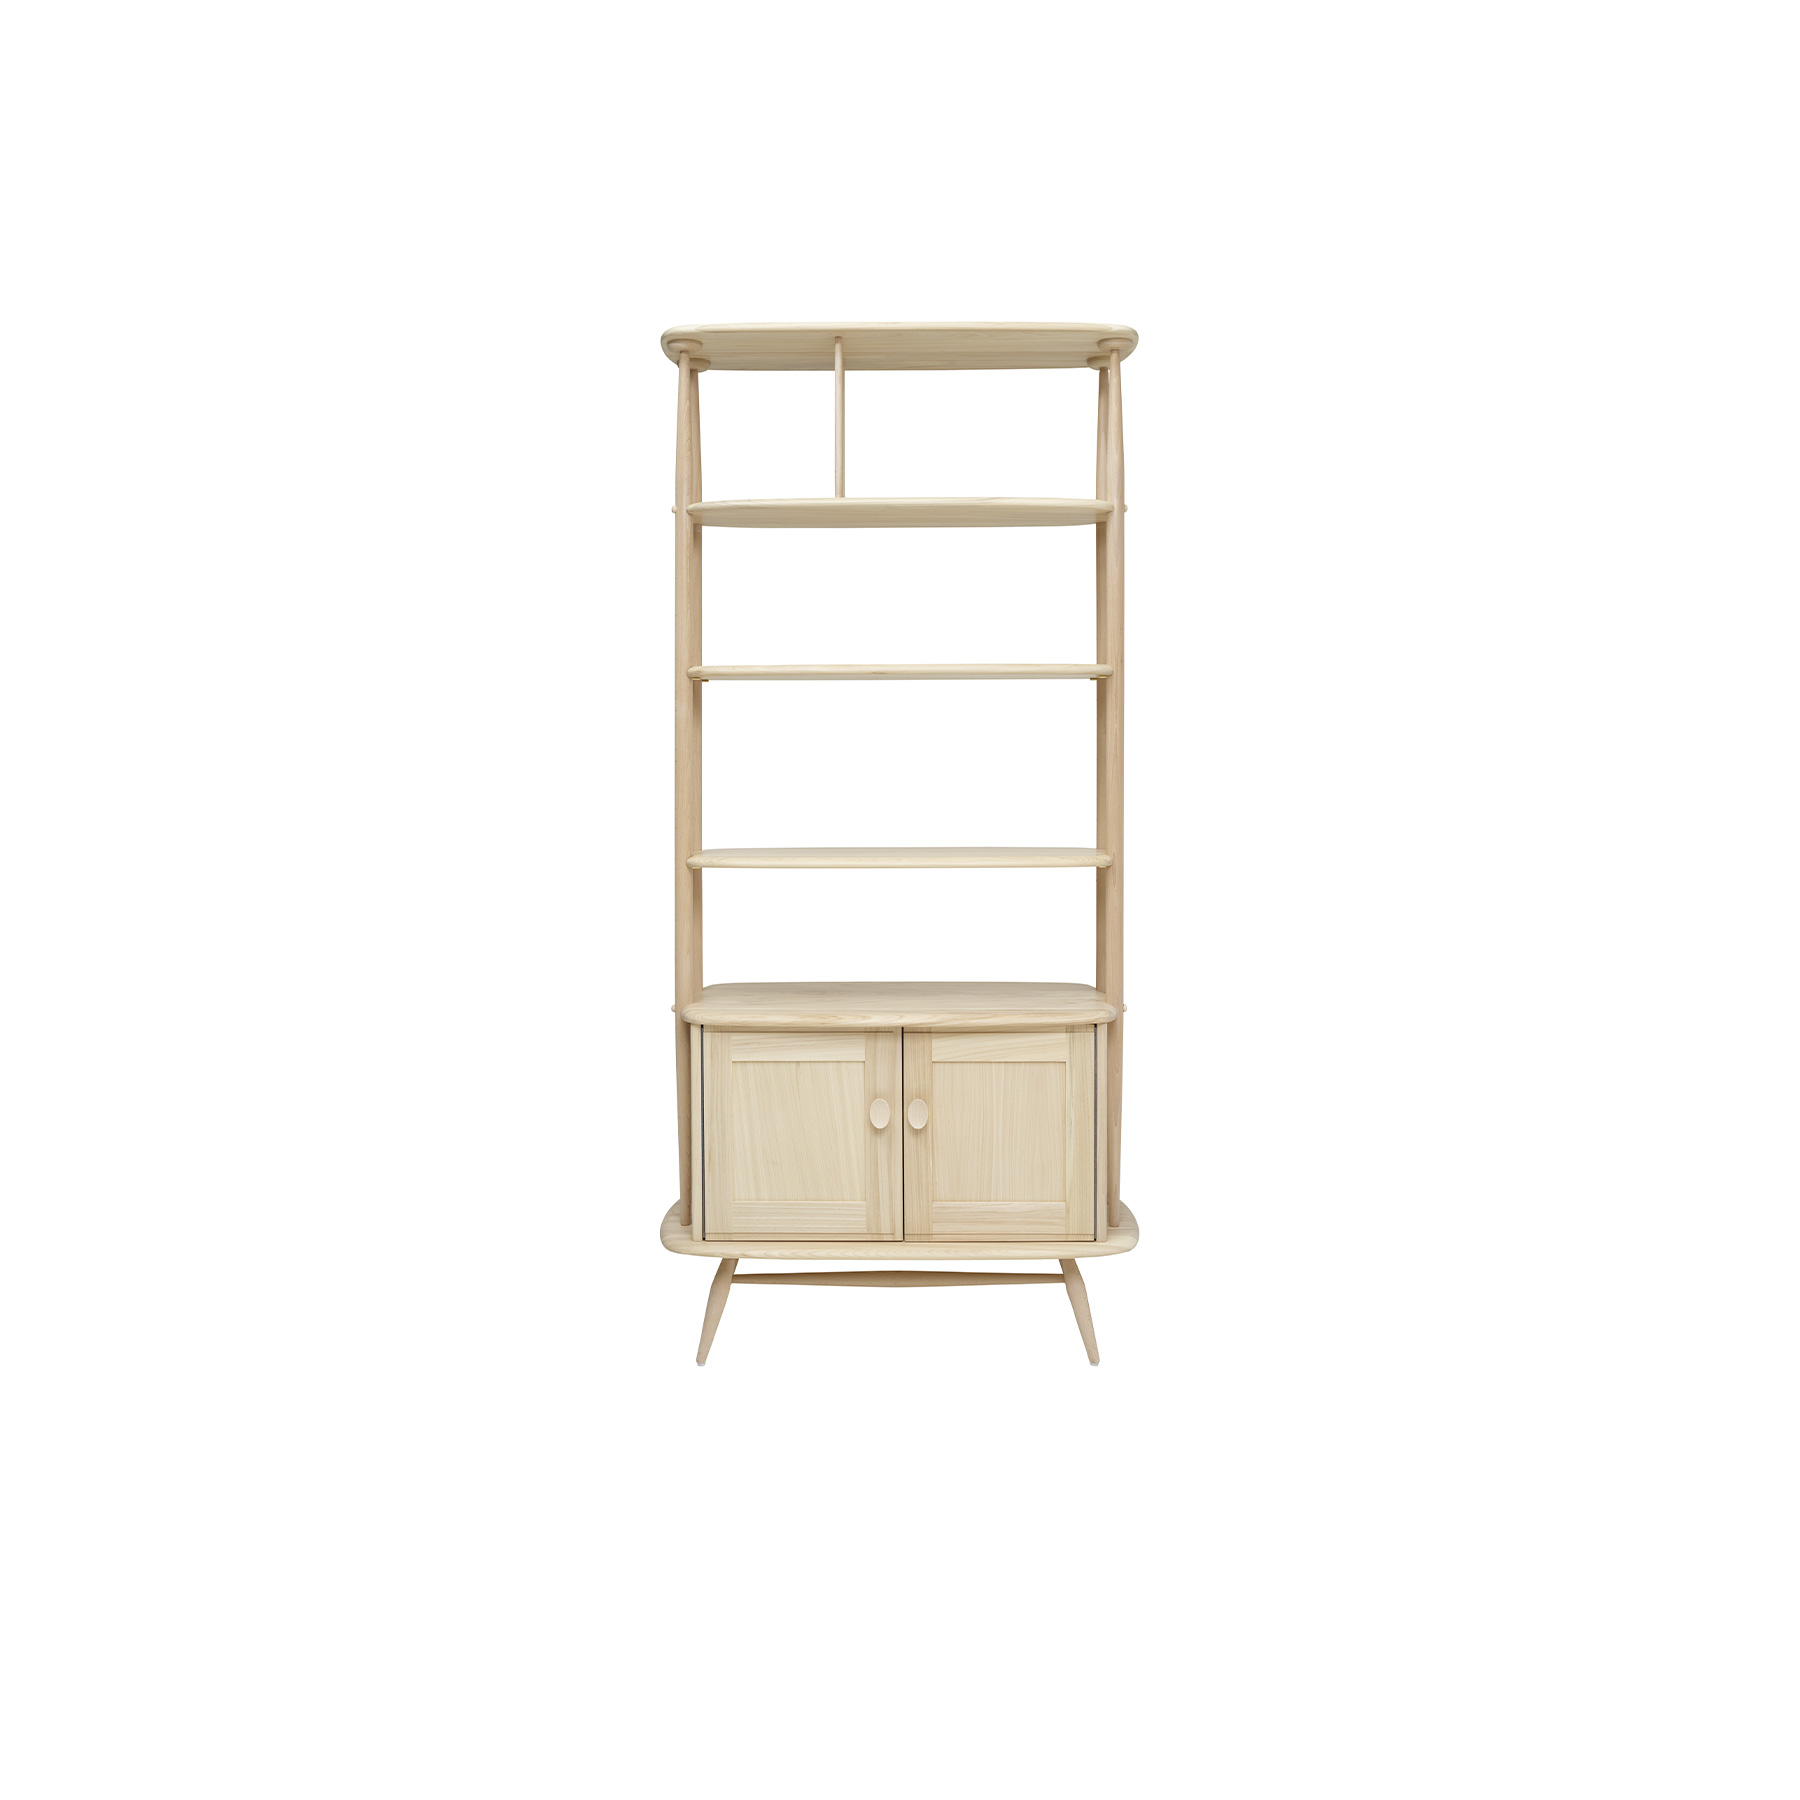 Originals Room Divider - <p>The Ercol Originals are pieces of timeless and classic design that never date or show their age. It is furniture that is as relevant and as functional now as it was when it was created in the 1950s and 1960s. This furniture was designed by Ercol's founder, Lucian Ercolani, who drew for his inspiration on the time-proven local design and craft in the Chiltern Hills around where he lived and built his first factory in 1920 in High Wycombe. Using the strength of beech and the beauty of elm he carried this definition on into a huge variety of dining, kitchen, and school chairs and then extended the idiom into the low easy chair range epitomised by the 206 armchair and the studio couch. The beauty of the colour and the grain of the elm took Lucian on to use elm for the tables and cabinets of the Originals and the following Windsor range. </p>